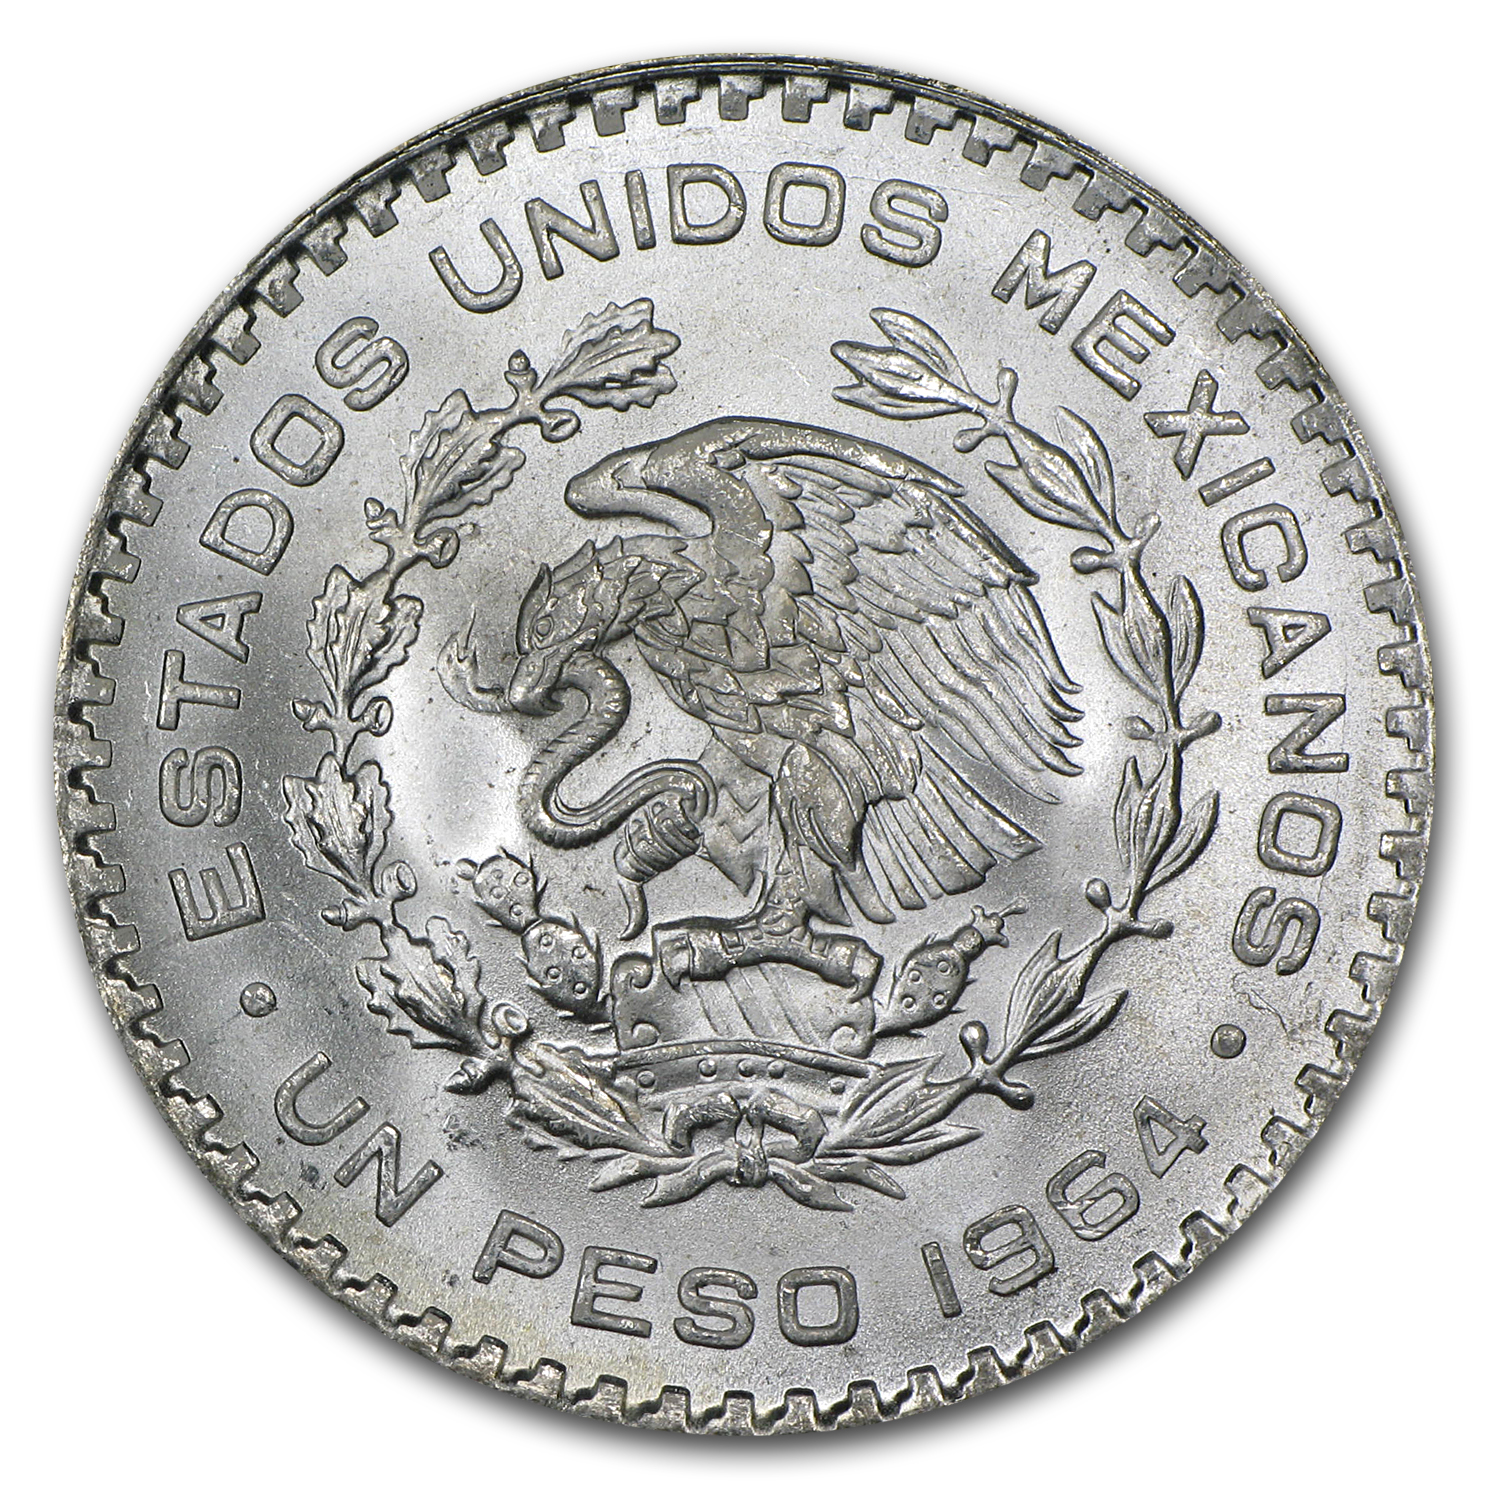 1957-1967 Mexican Silver 1 Peso (AU or Better) ASW .0514 oz